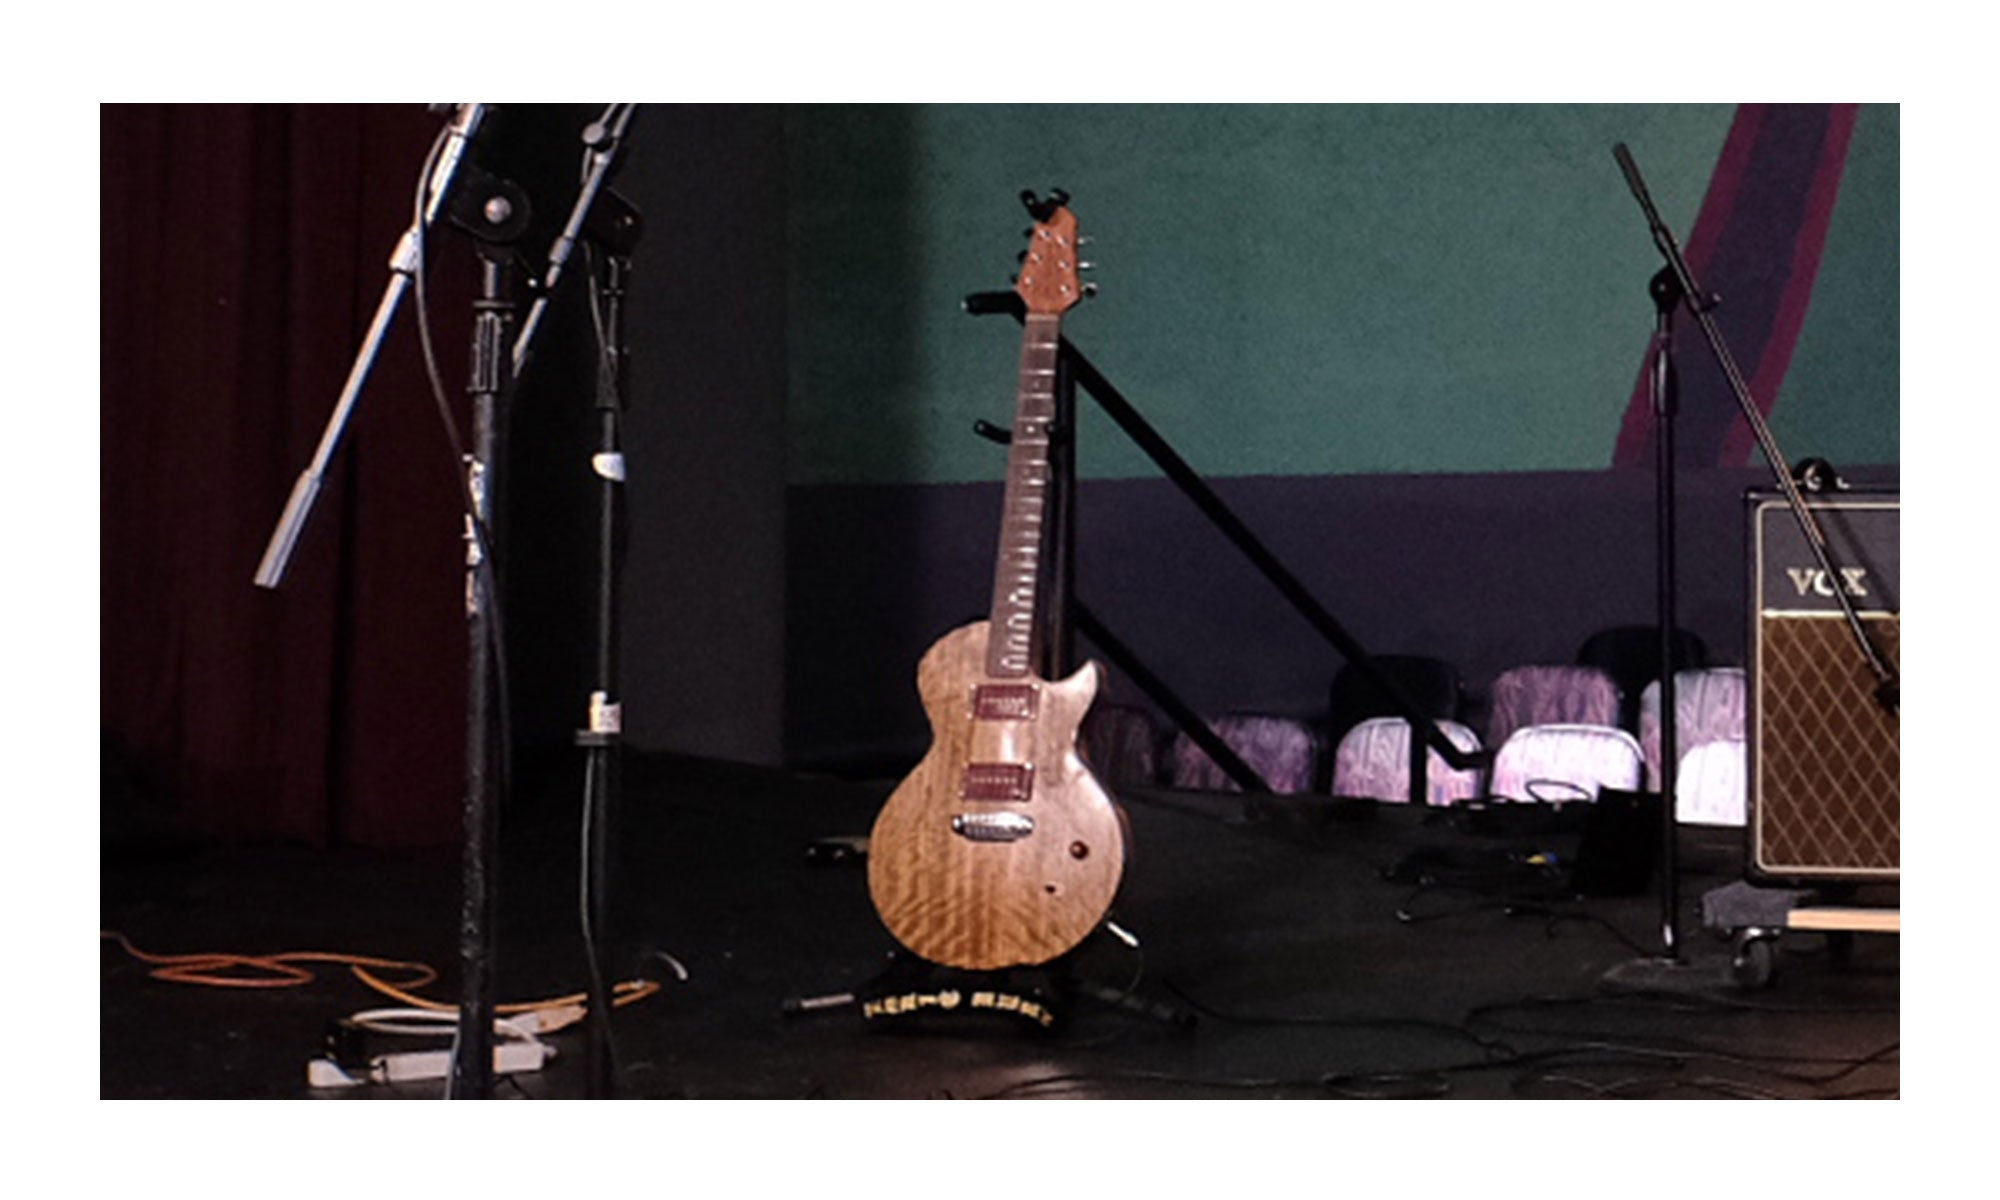 Singer / Songwriter Erin Rae's guitar on stage at the famous Shoals Theatre in Florence, AL